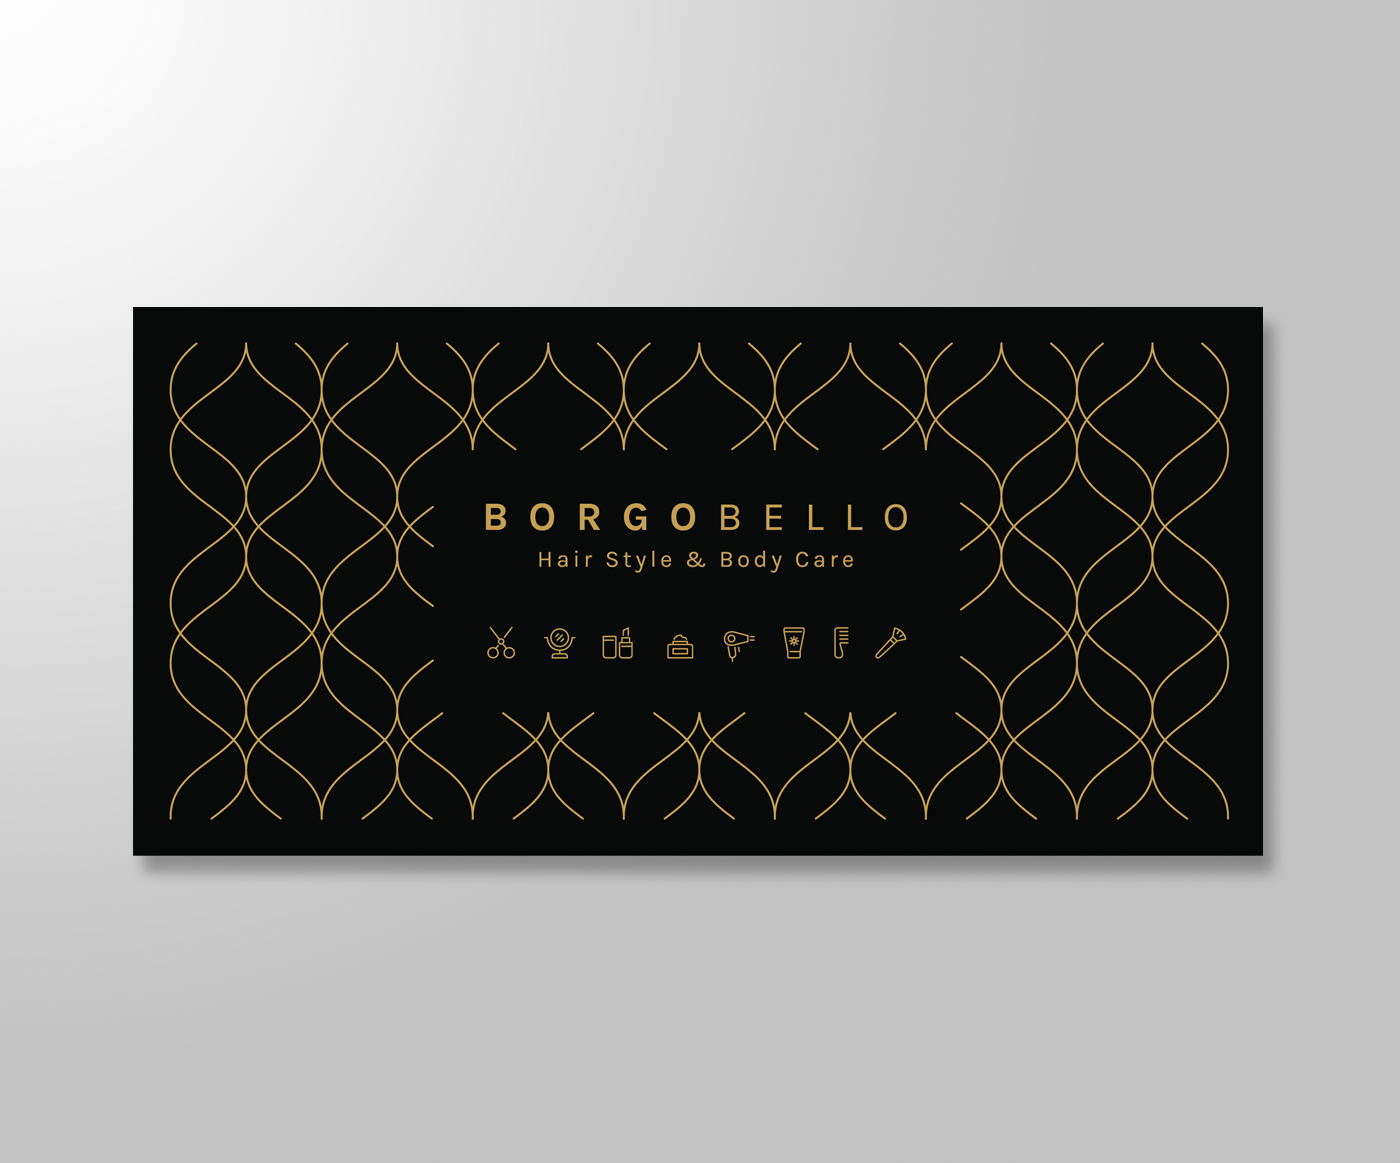 BORGOBELLO - Corporate design